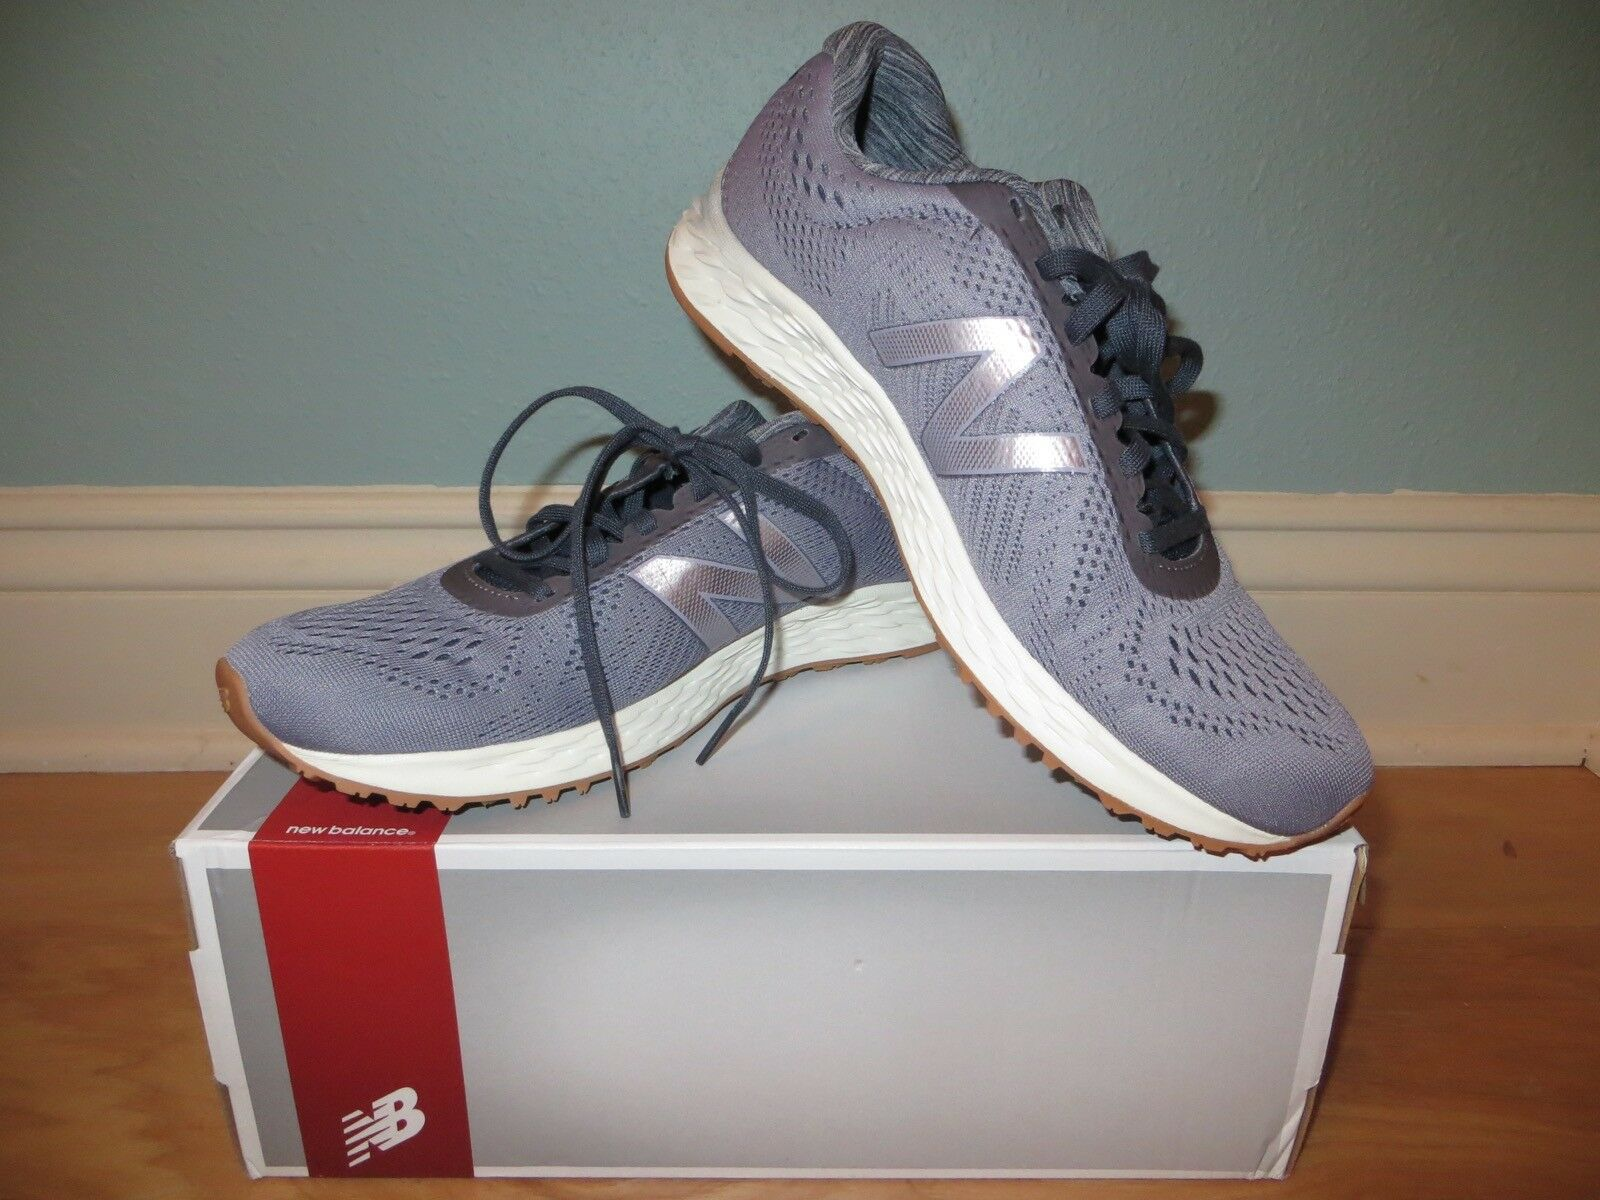 NEW BALANCE FRESH FOAM ARISHI PURPLE GRAY GLITTER 9 SNEAKERS RUNNING Schuhe NIB 9 GLITTER ea9055